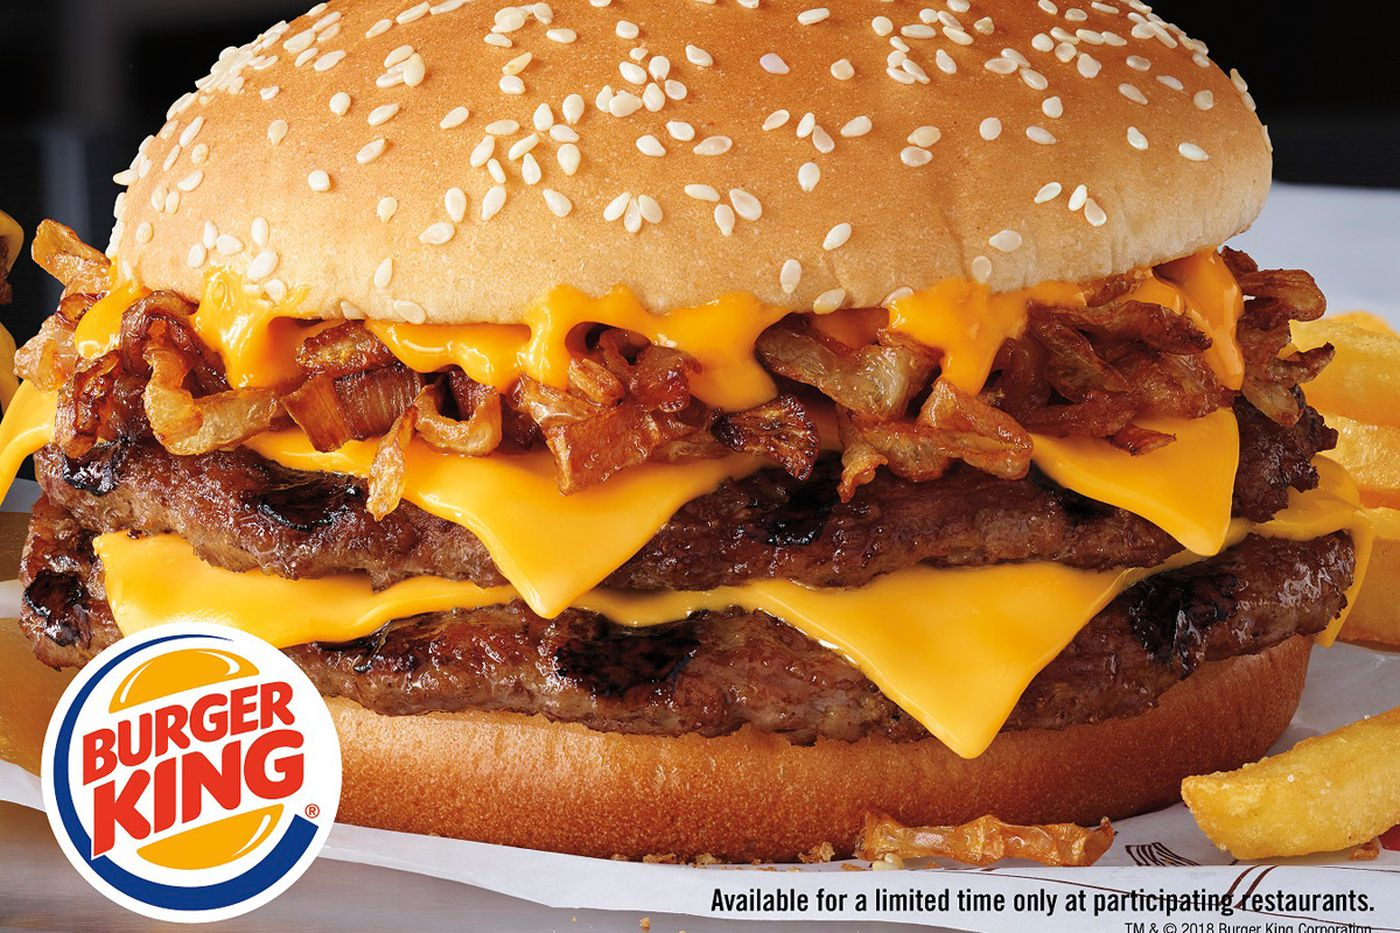 Burger King launches Philly cheesesteak burger — with a Whopper of a claim